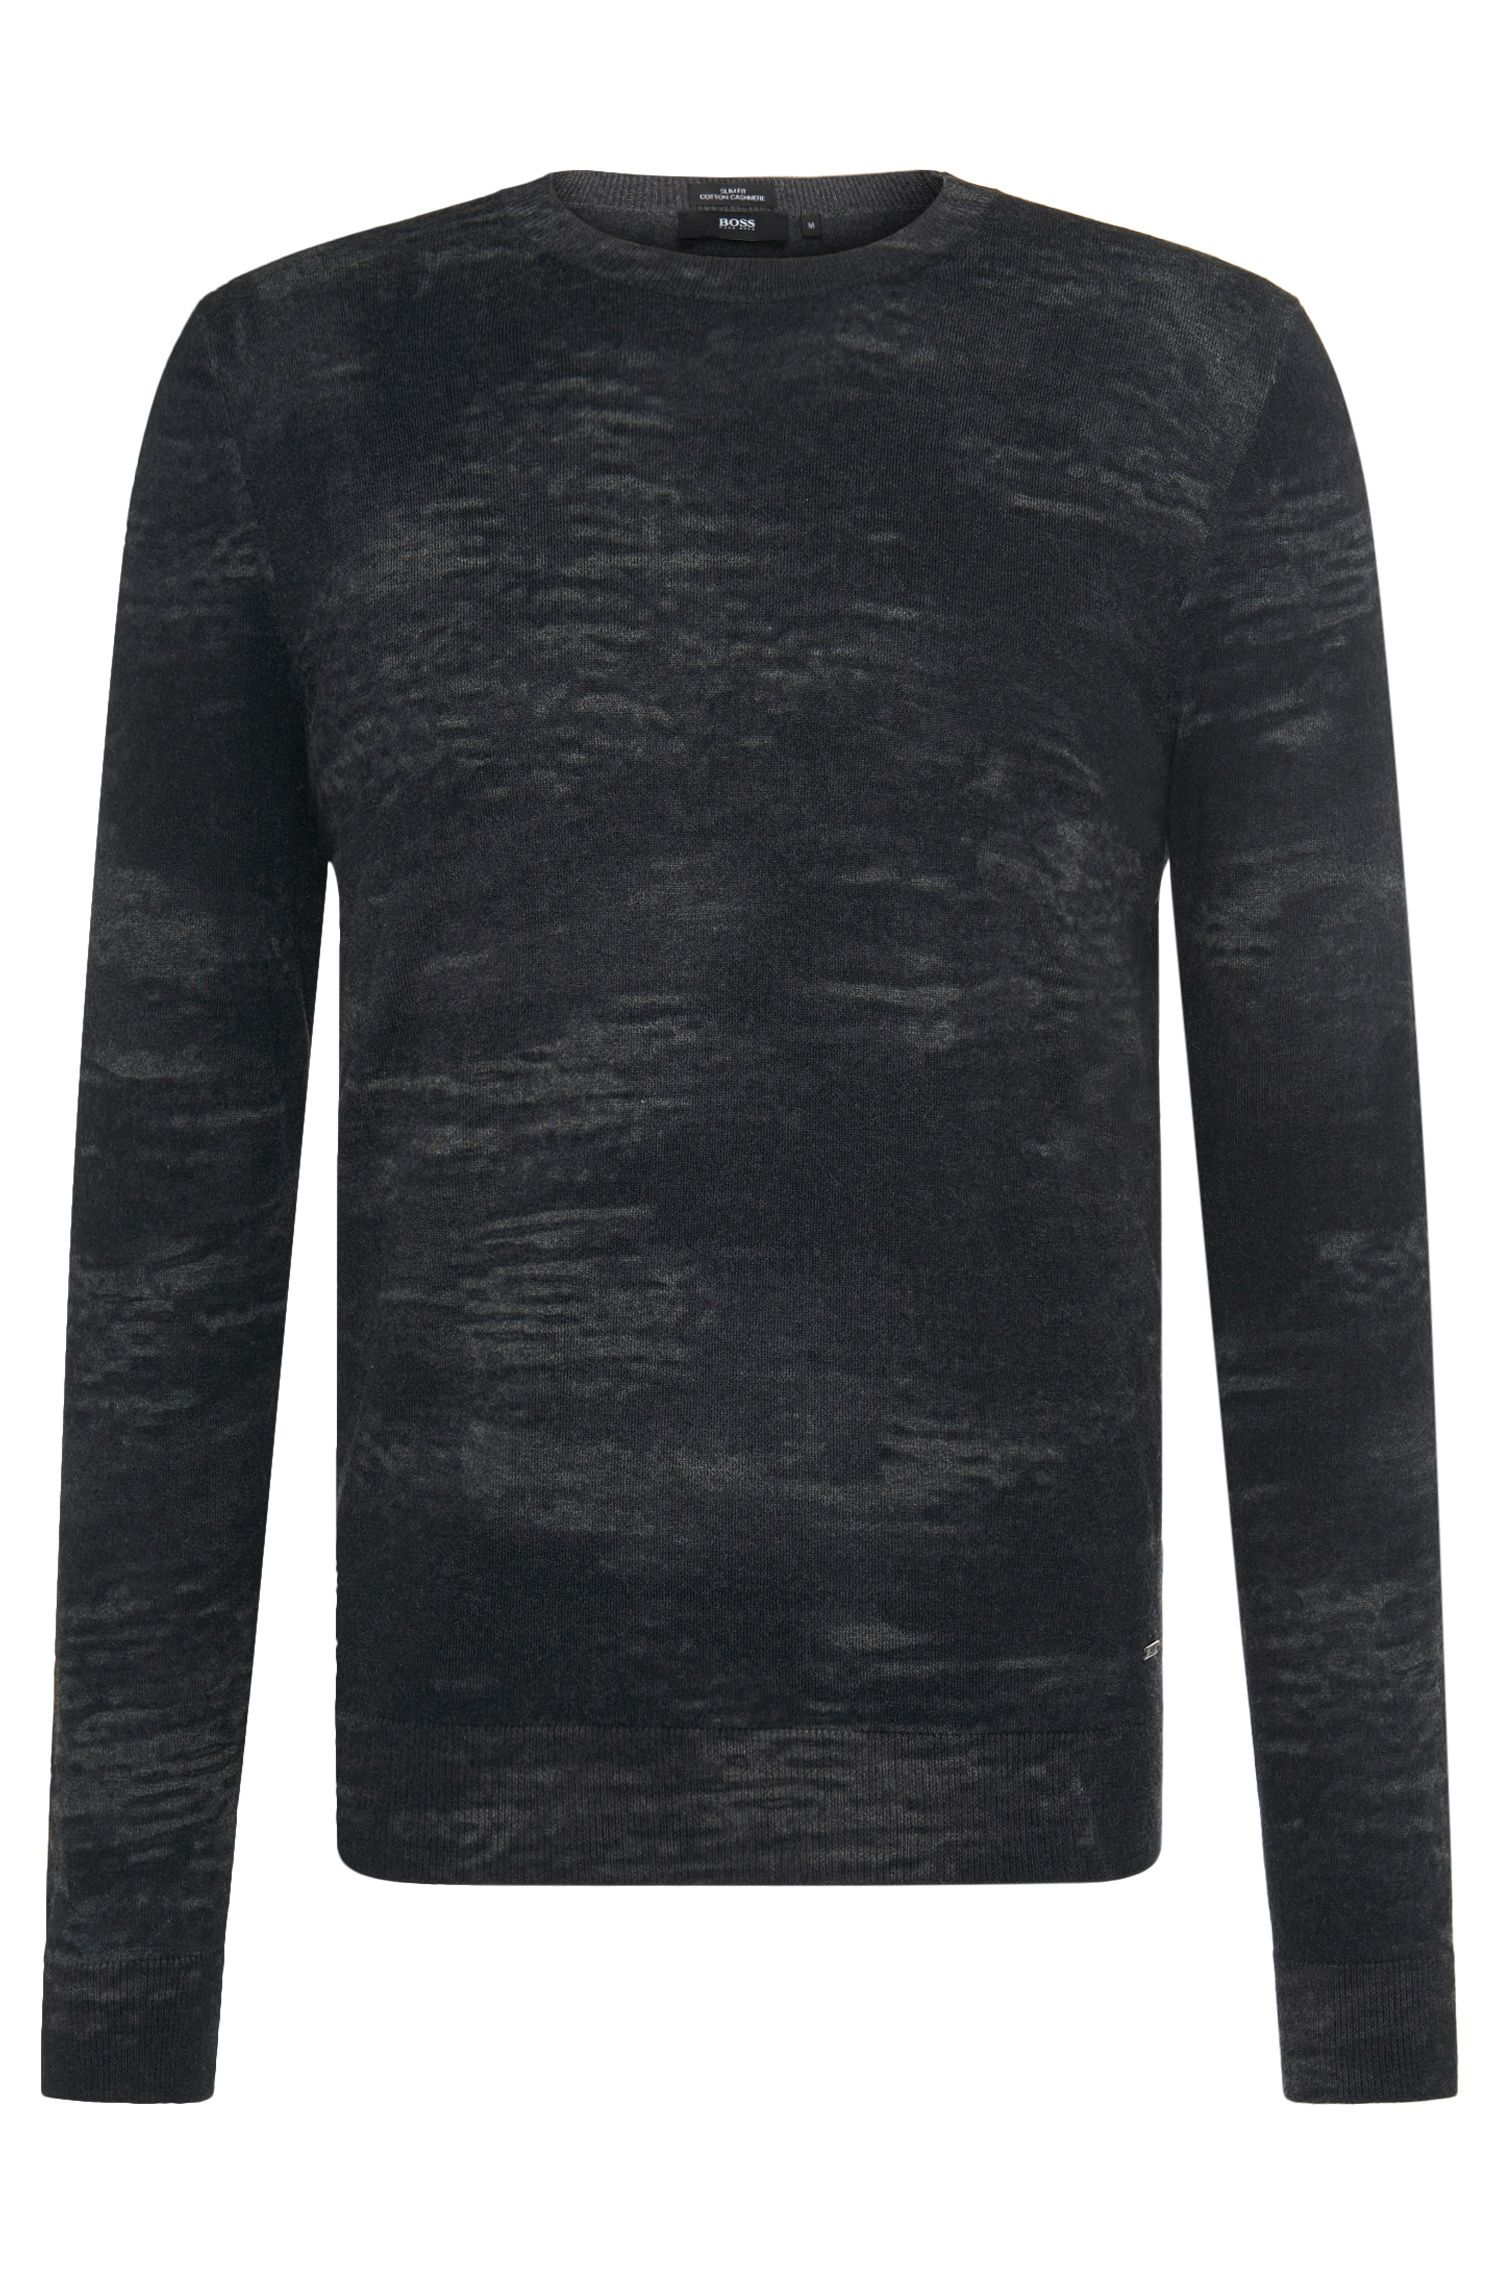 Patterned slim-fit sweater in a cotton blend with cashmere: 'Bernino'